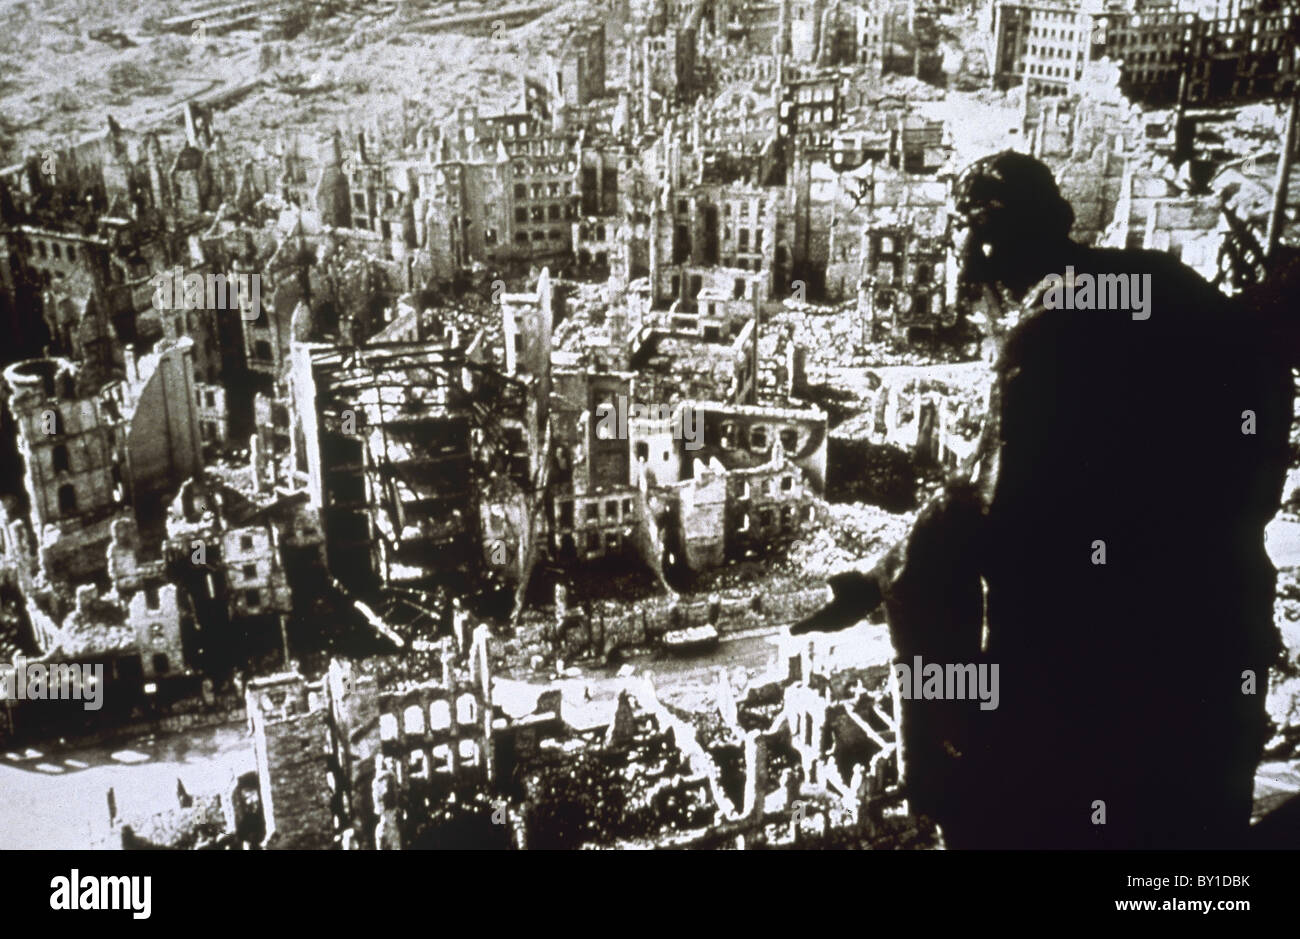 World War II. Dresden destroyed by bombing. - Stock Image